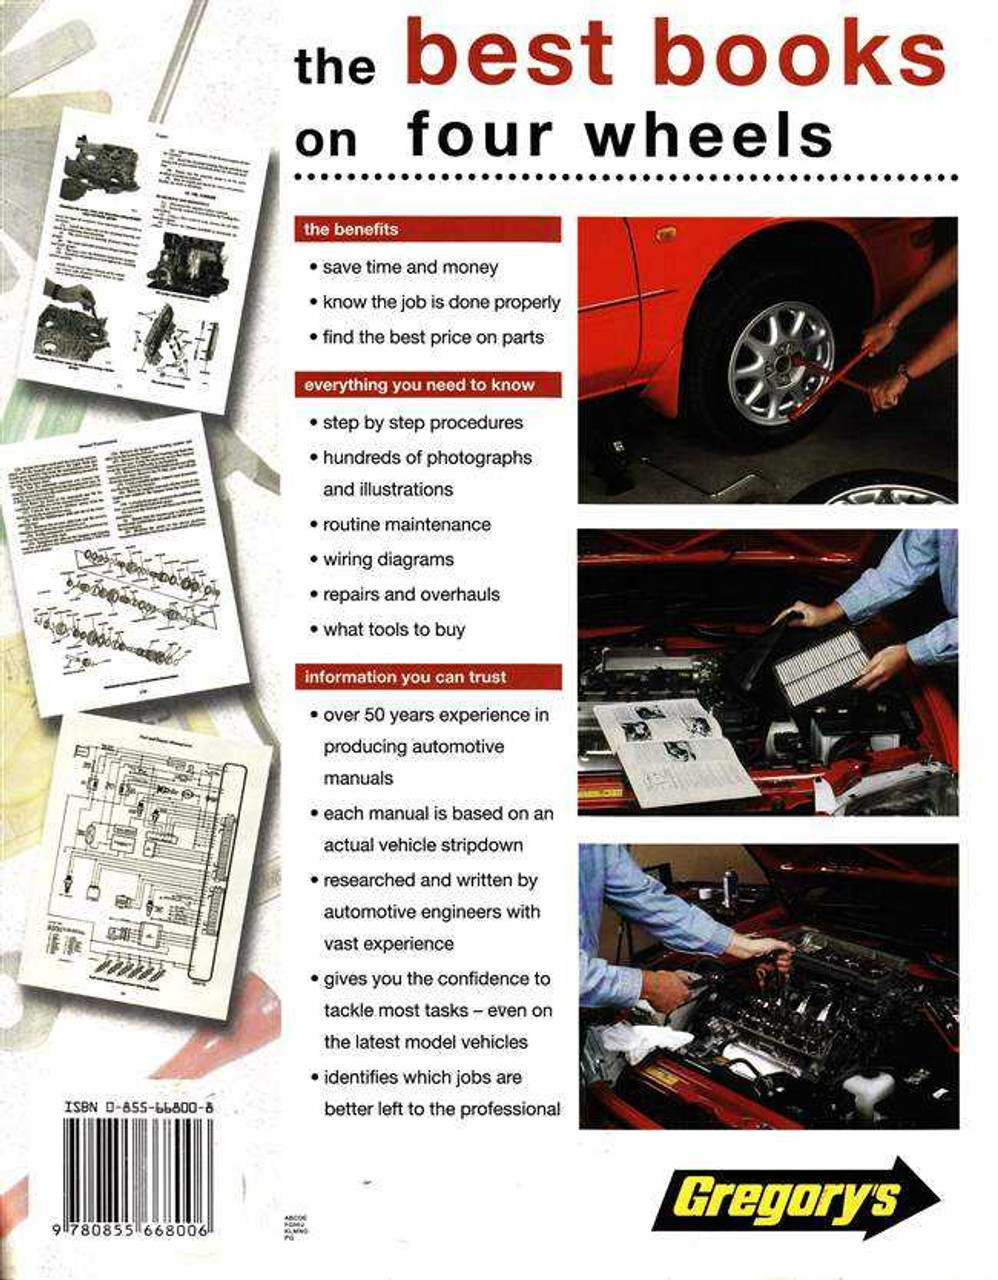 Volkswagen Commercial Type 2 1973 - 1981 Workshop Manual